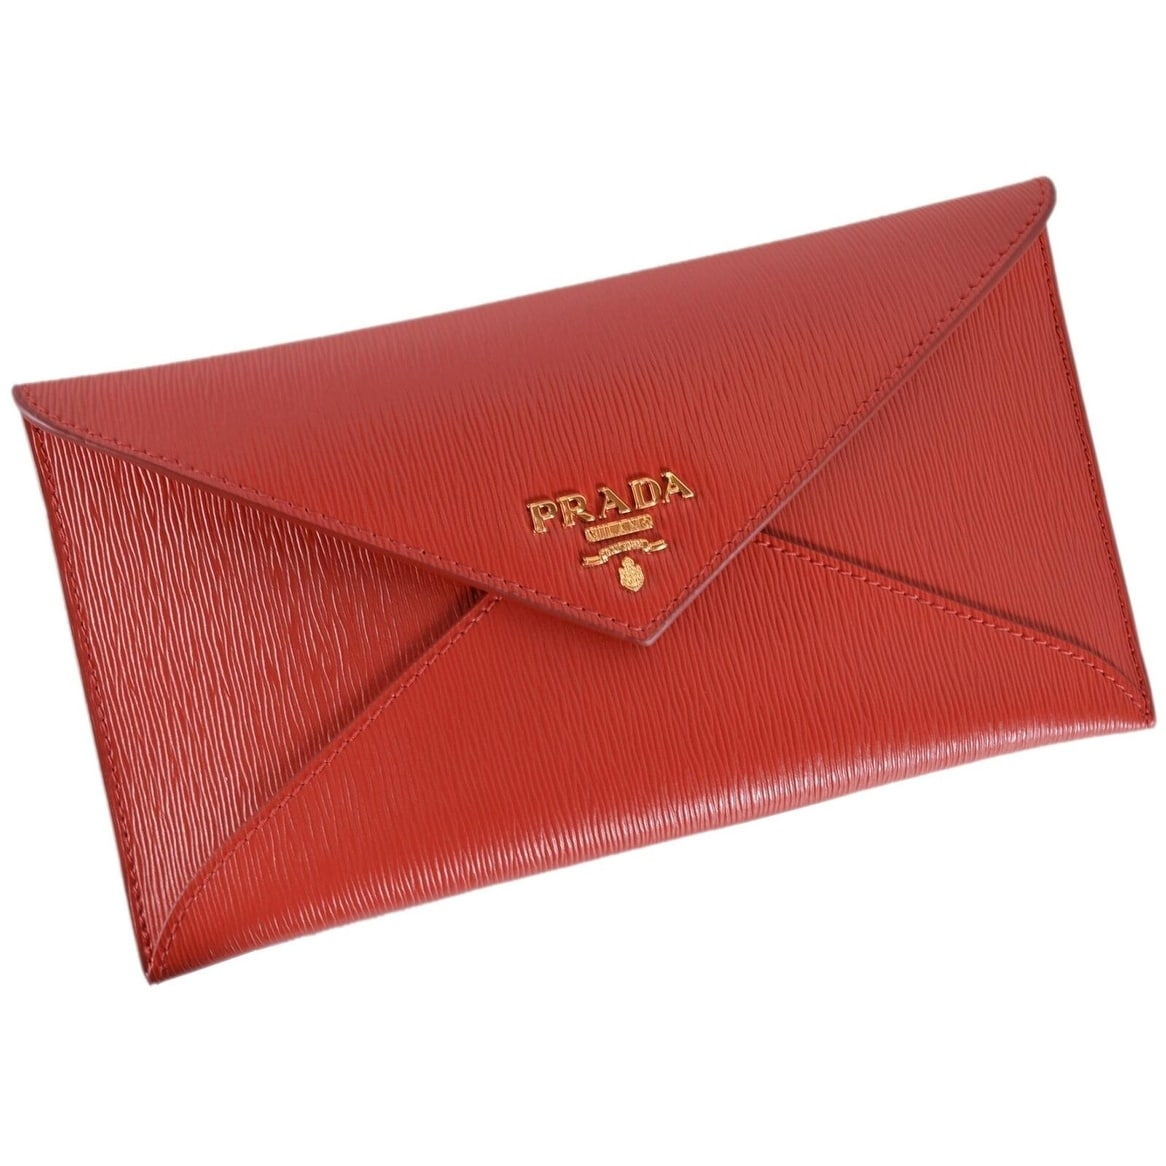 41adfc2ff745 Shop Prada 1MF175 2EZZ Red Vitello Saffiano Leather Flap Envelope Wallet  Clutch - Free Shipping Today - Overstock - 26952484